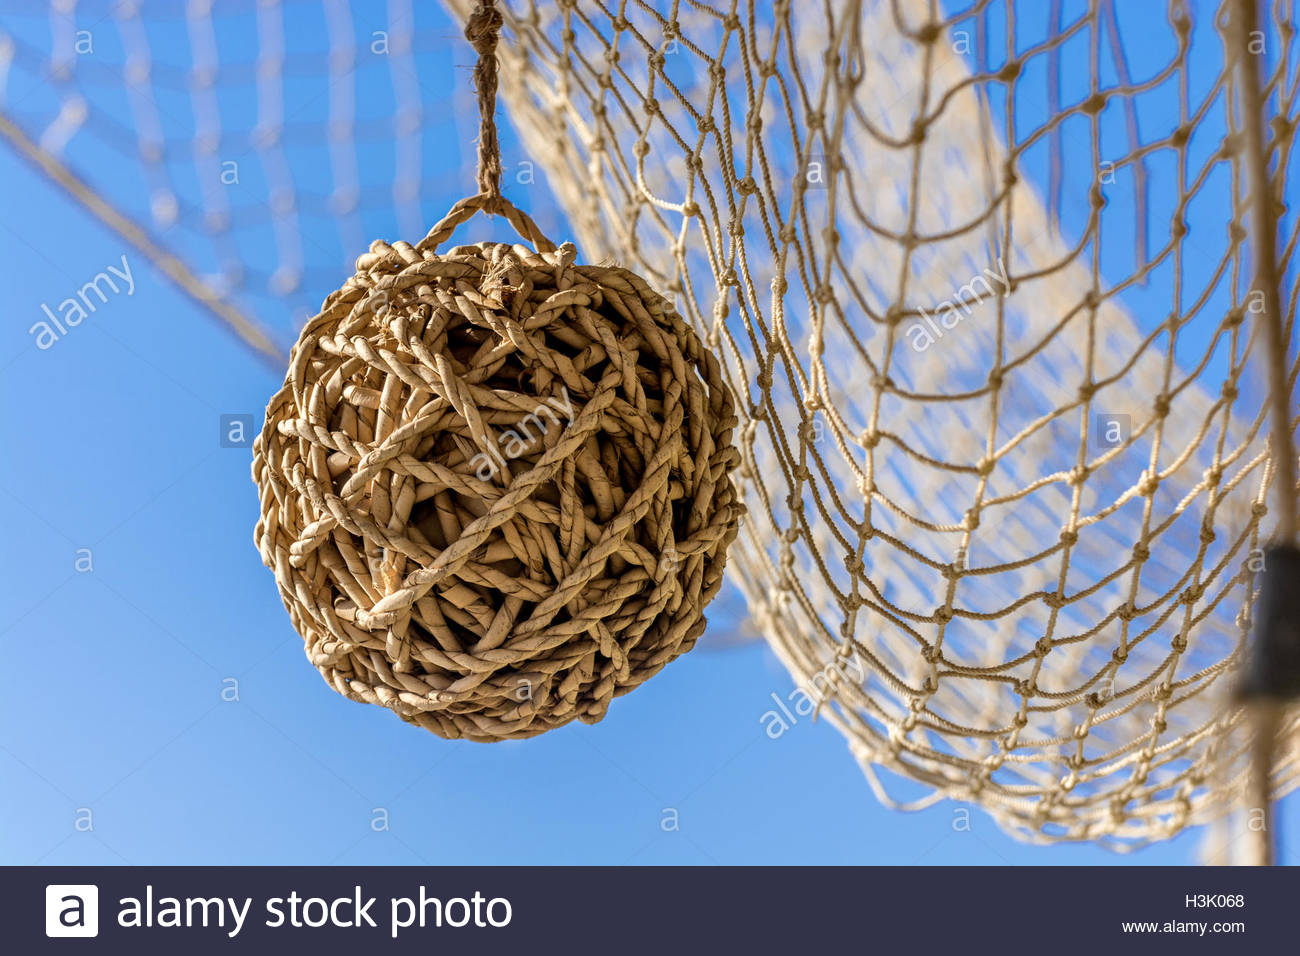 Fishing net and a wicker ball hanging, at background blue mediterranean sea on a a sunny day - Stock Image